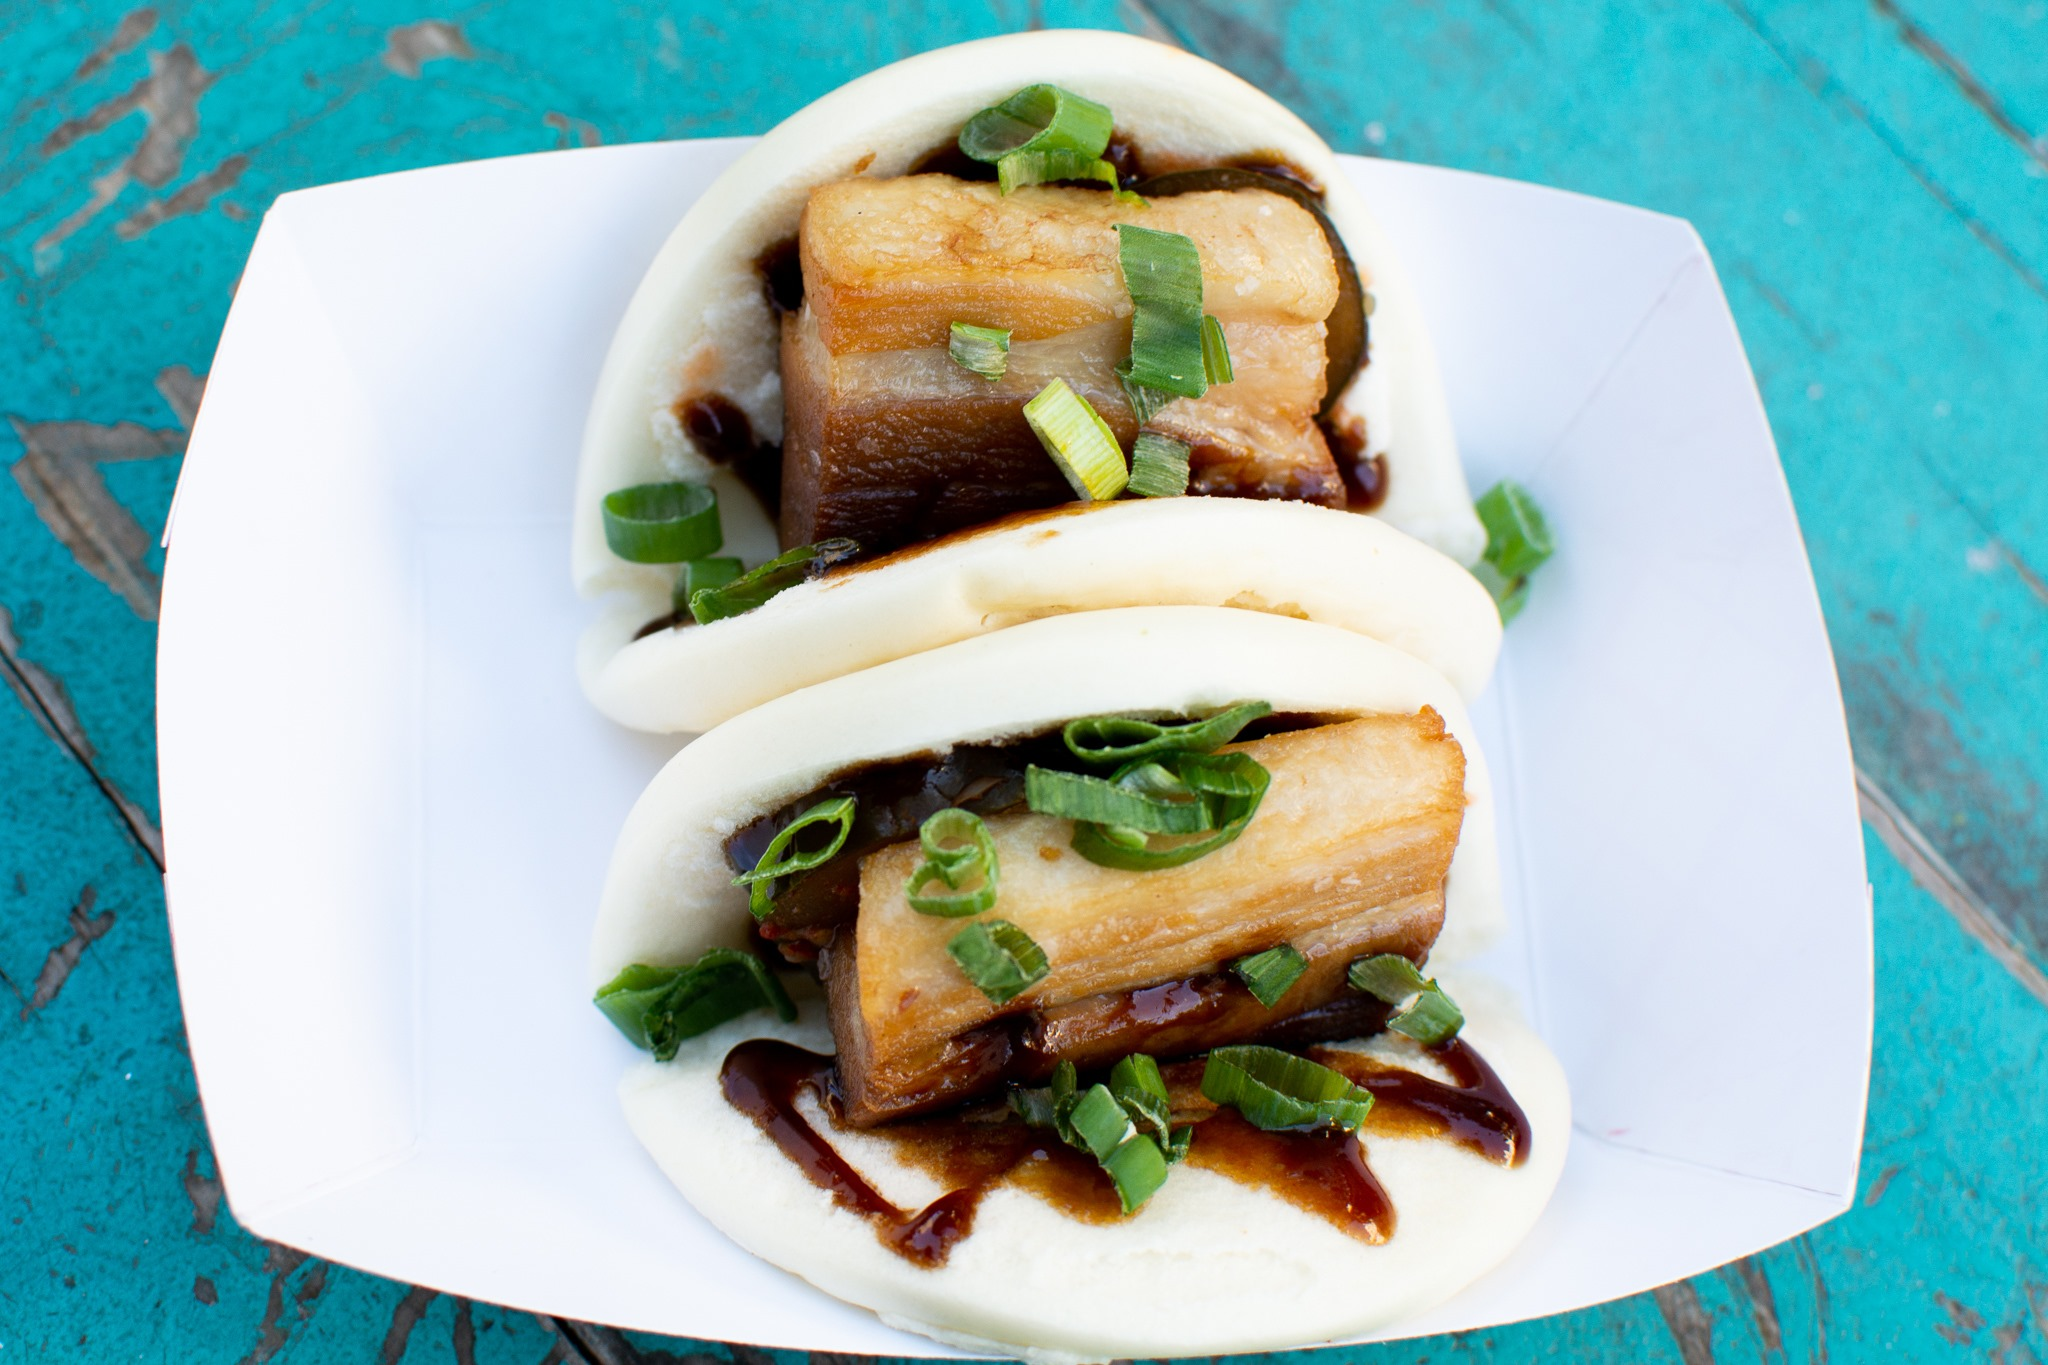 Steamed buns from East Side King